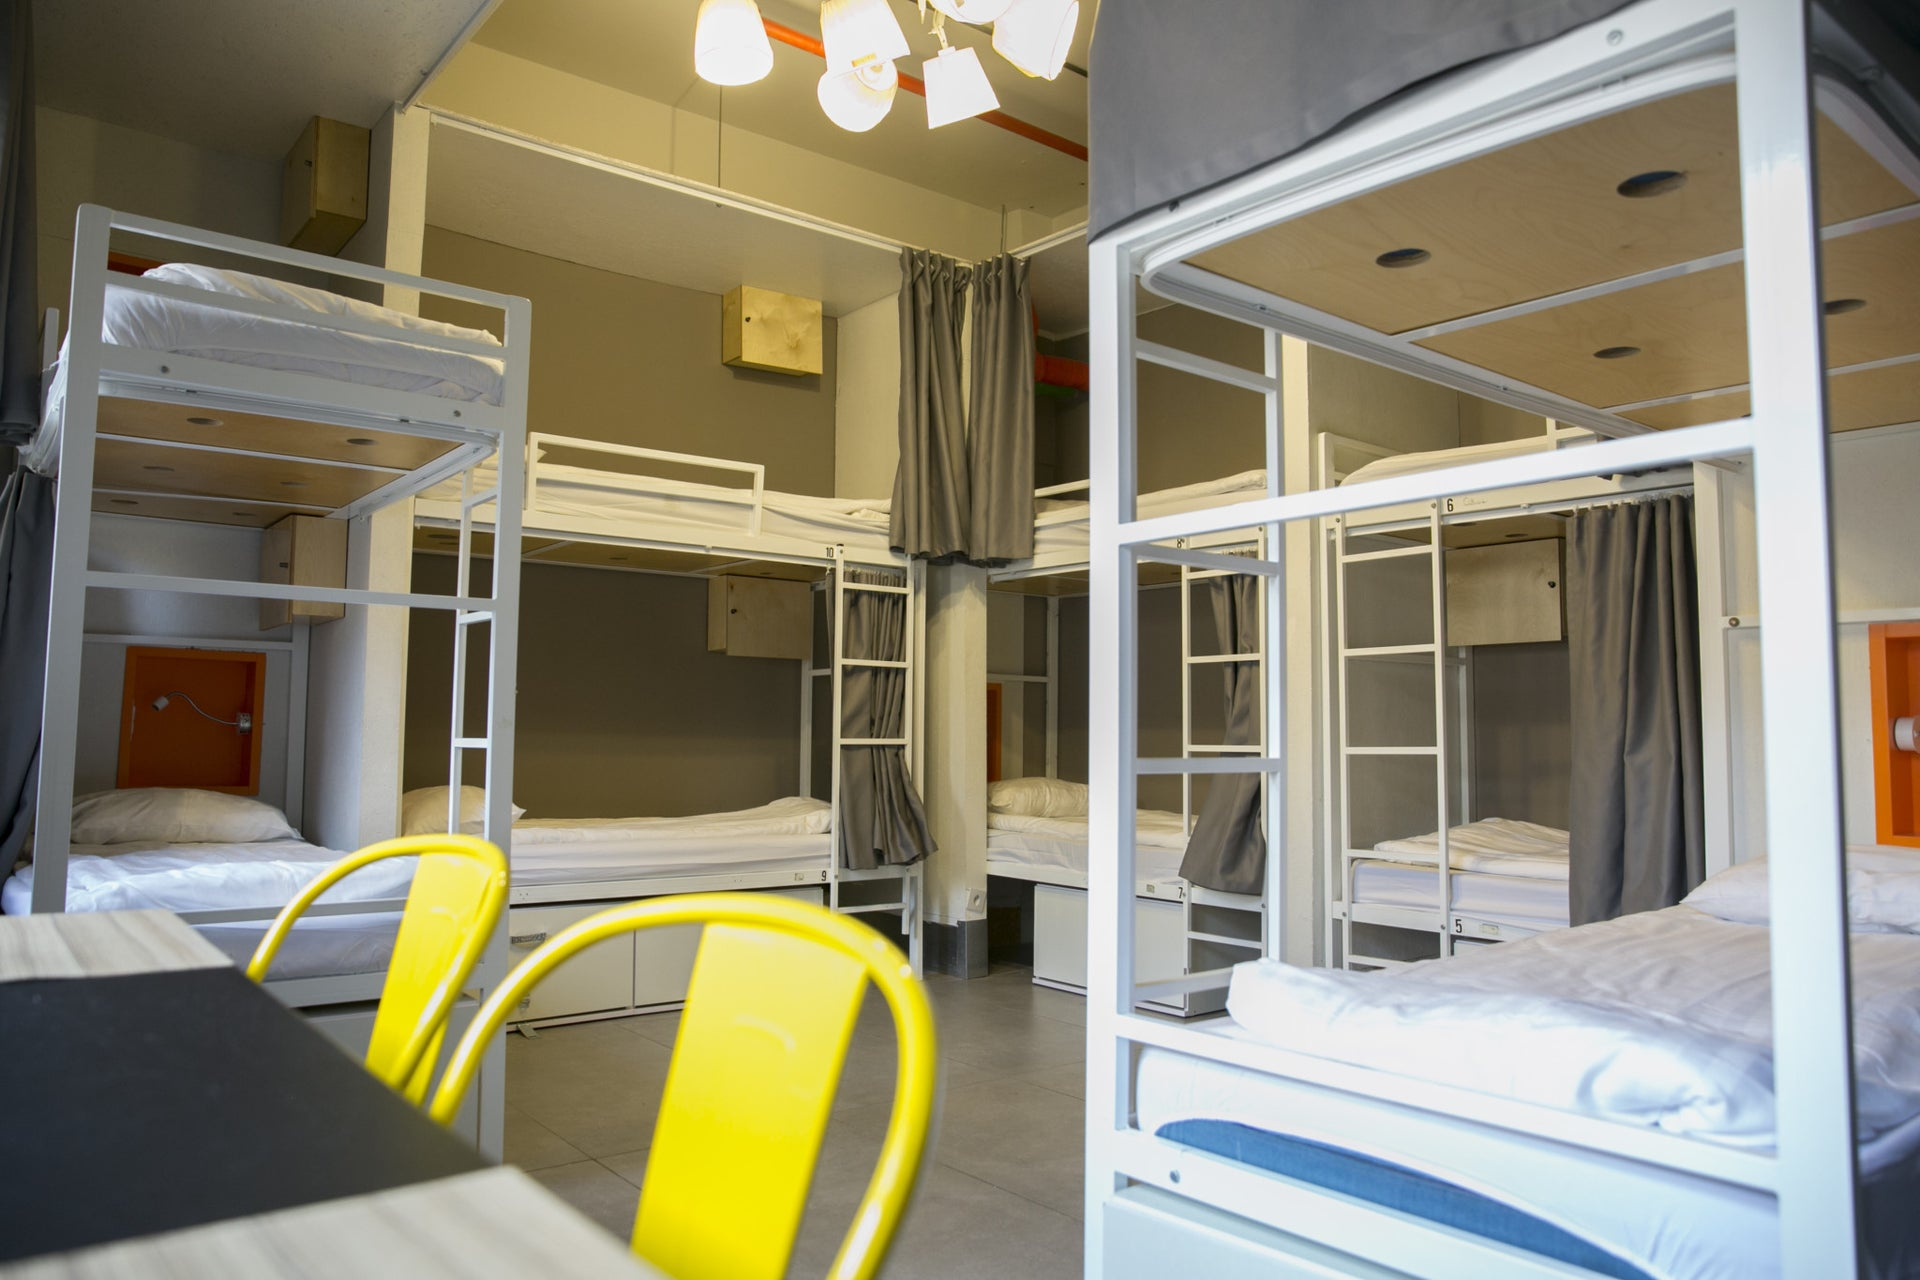 A shared room at the Post Hostel.